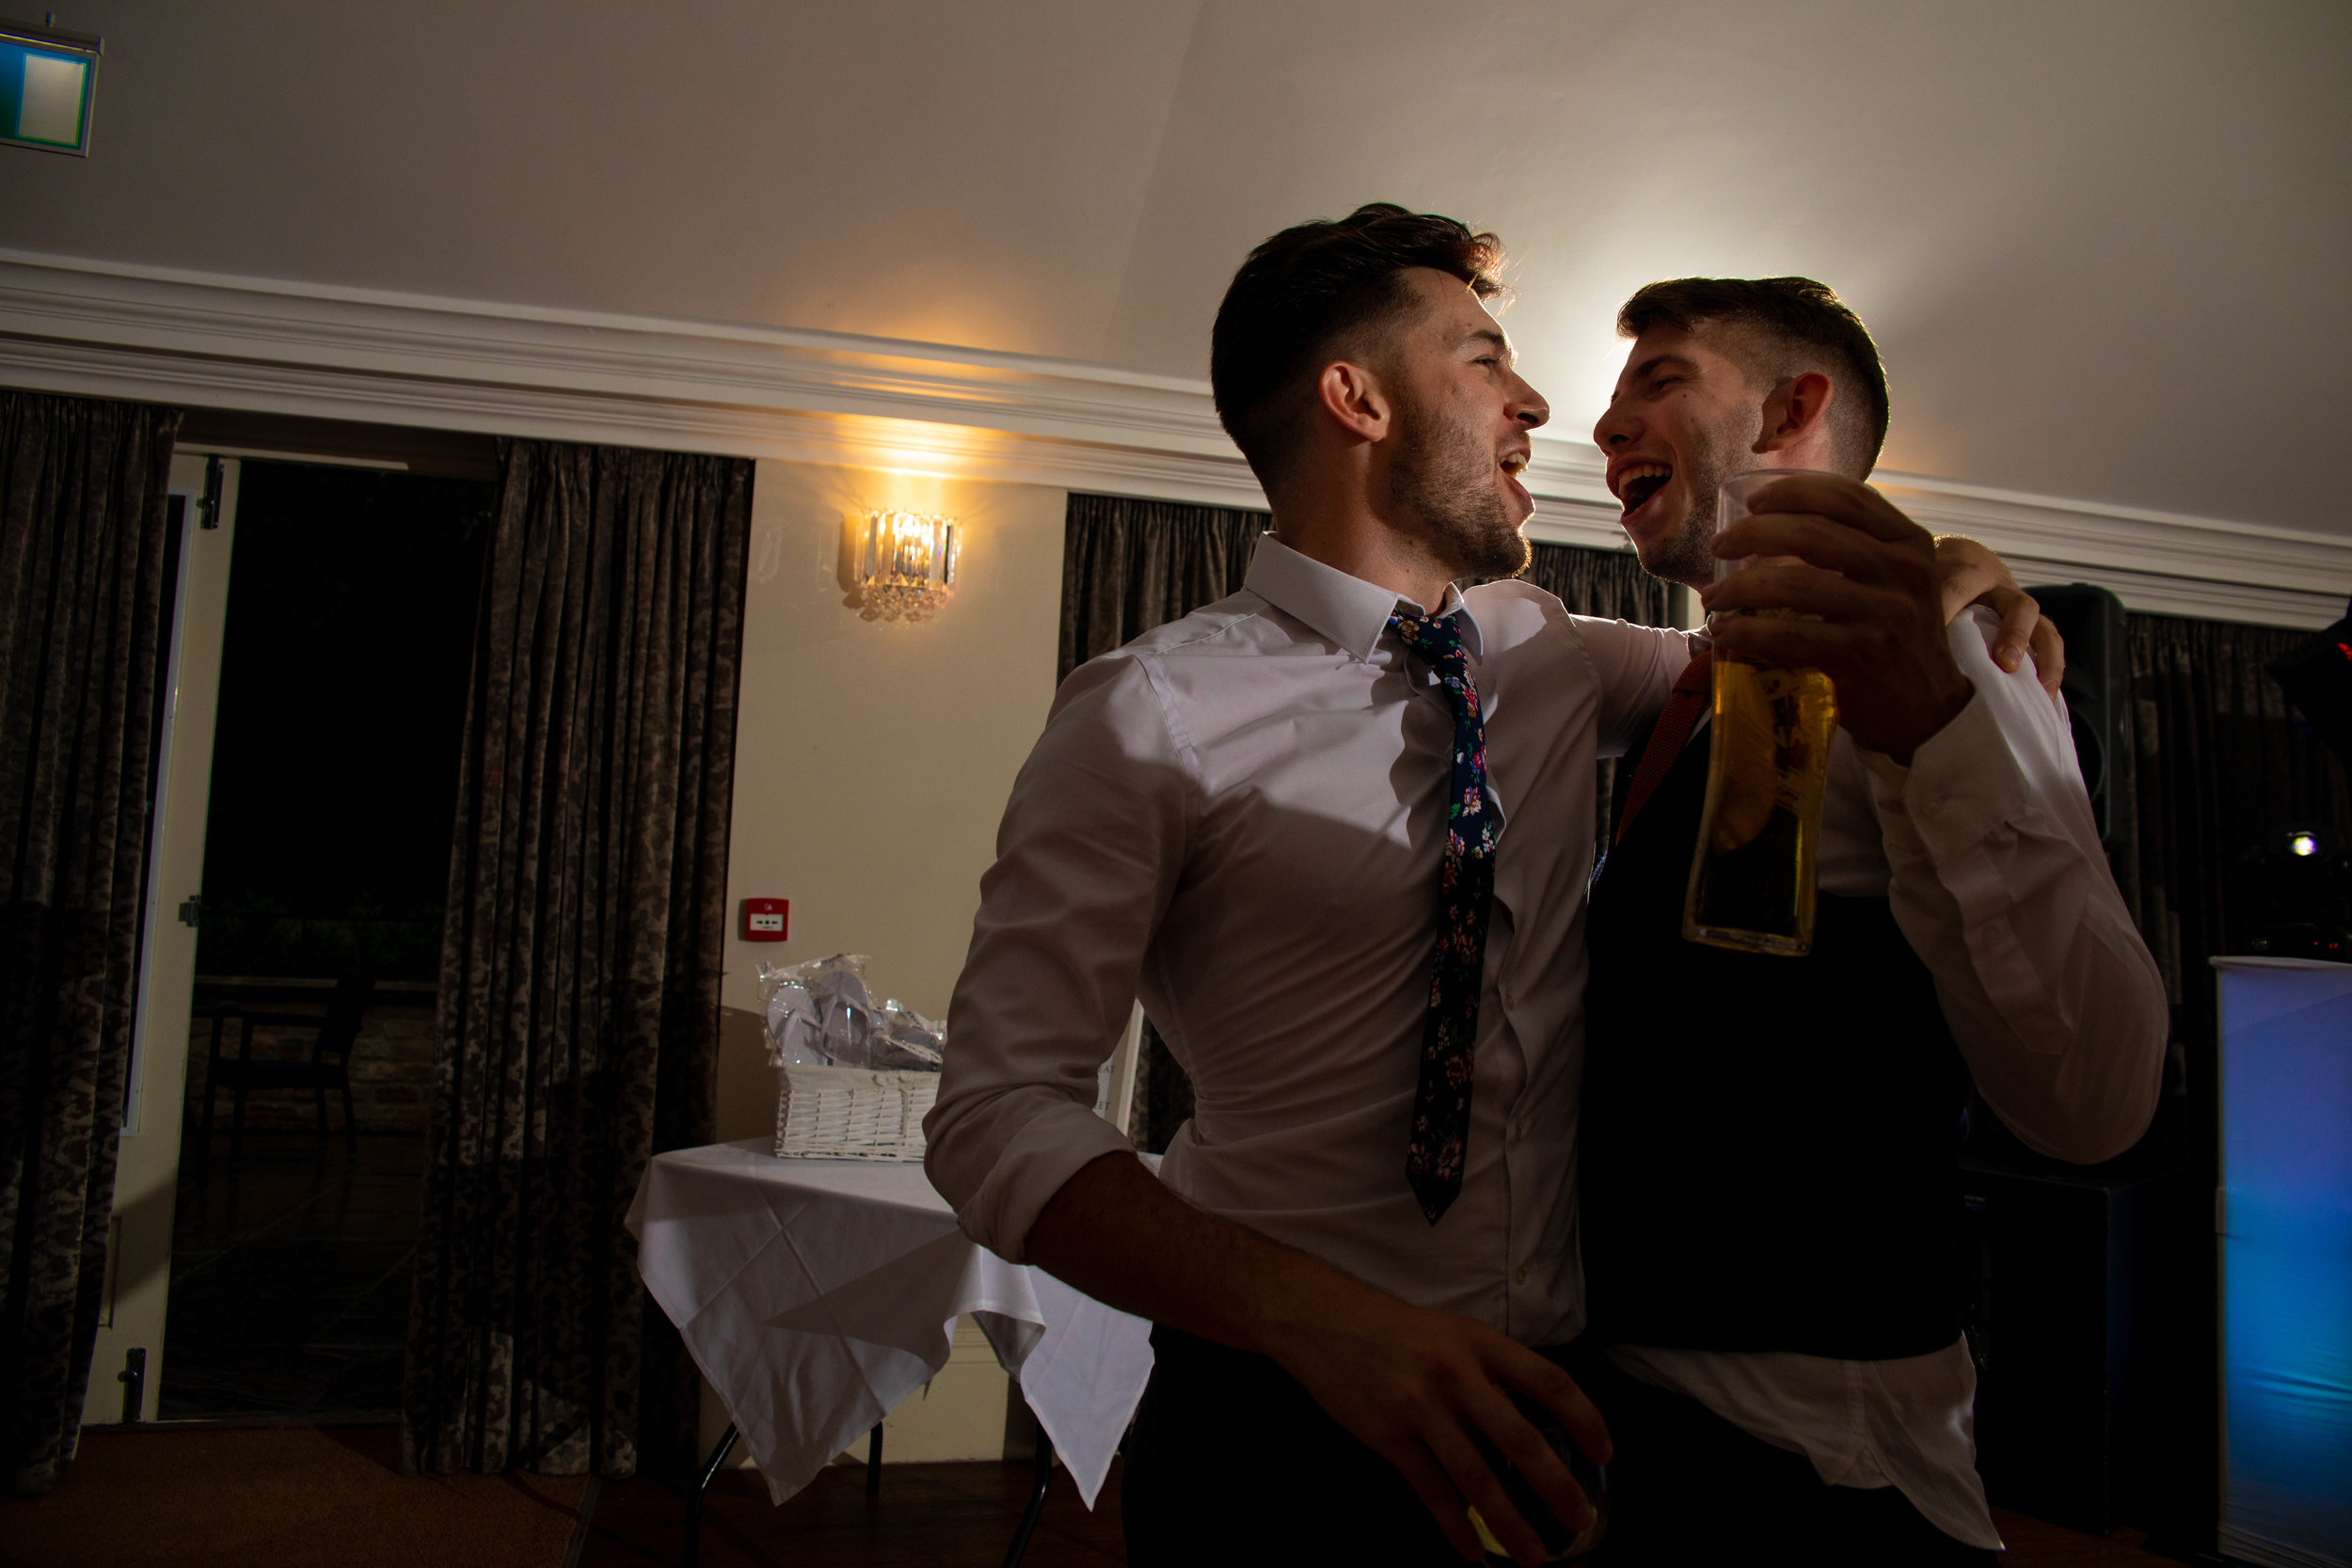 Barton_Hall_Hotel_Nick_Labrum_Photo_Steph&James-650.jpg